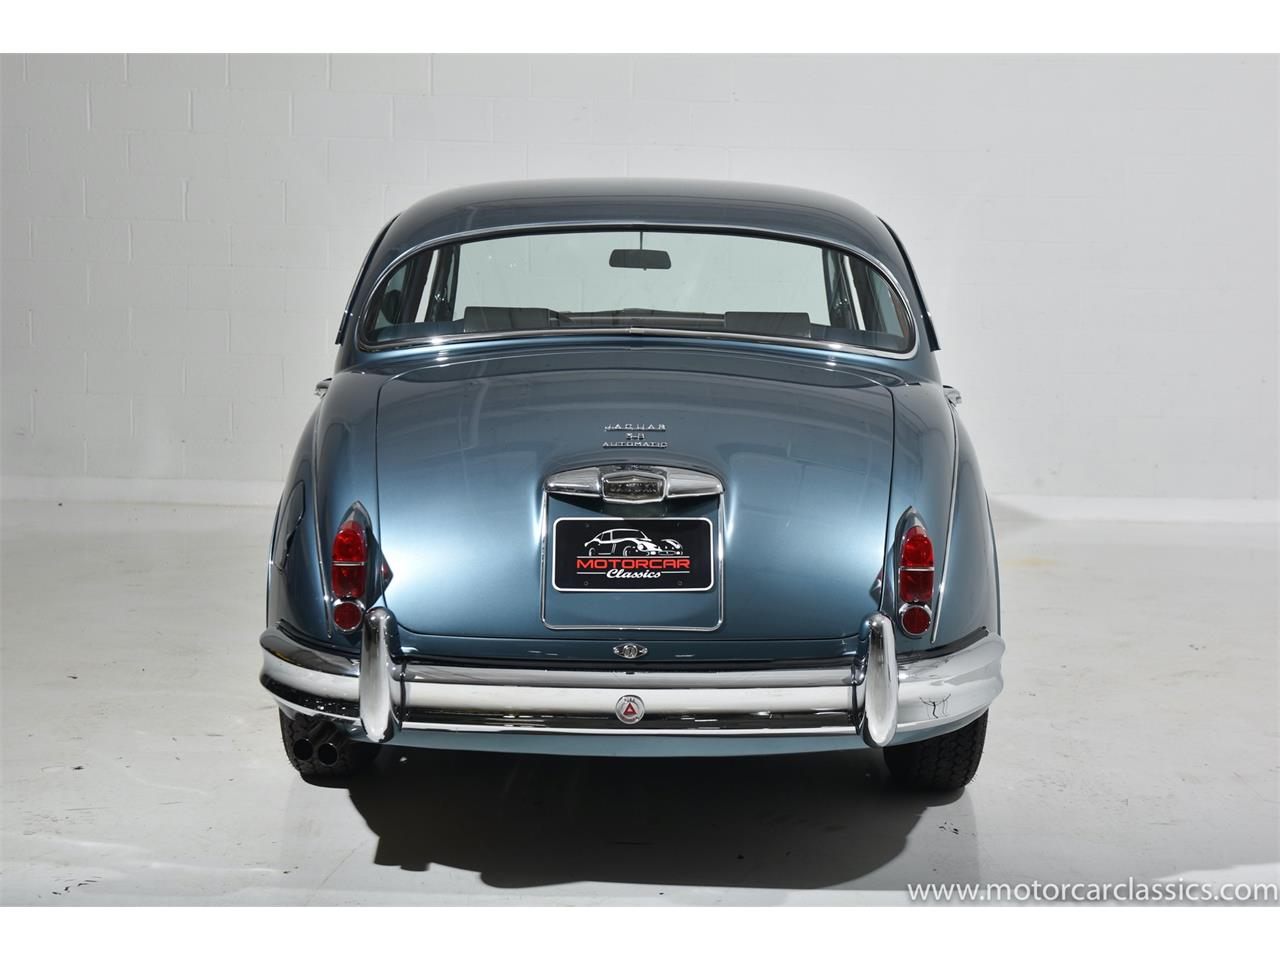 1960 Jaguar Mark II (CC-1327328) for sale in Farmingdale, New York